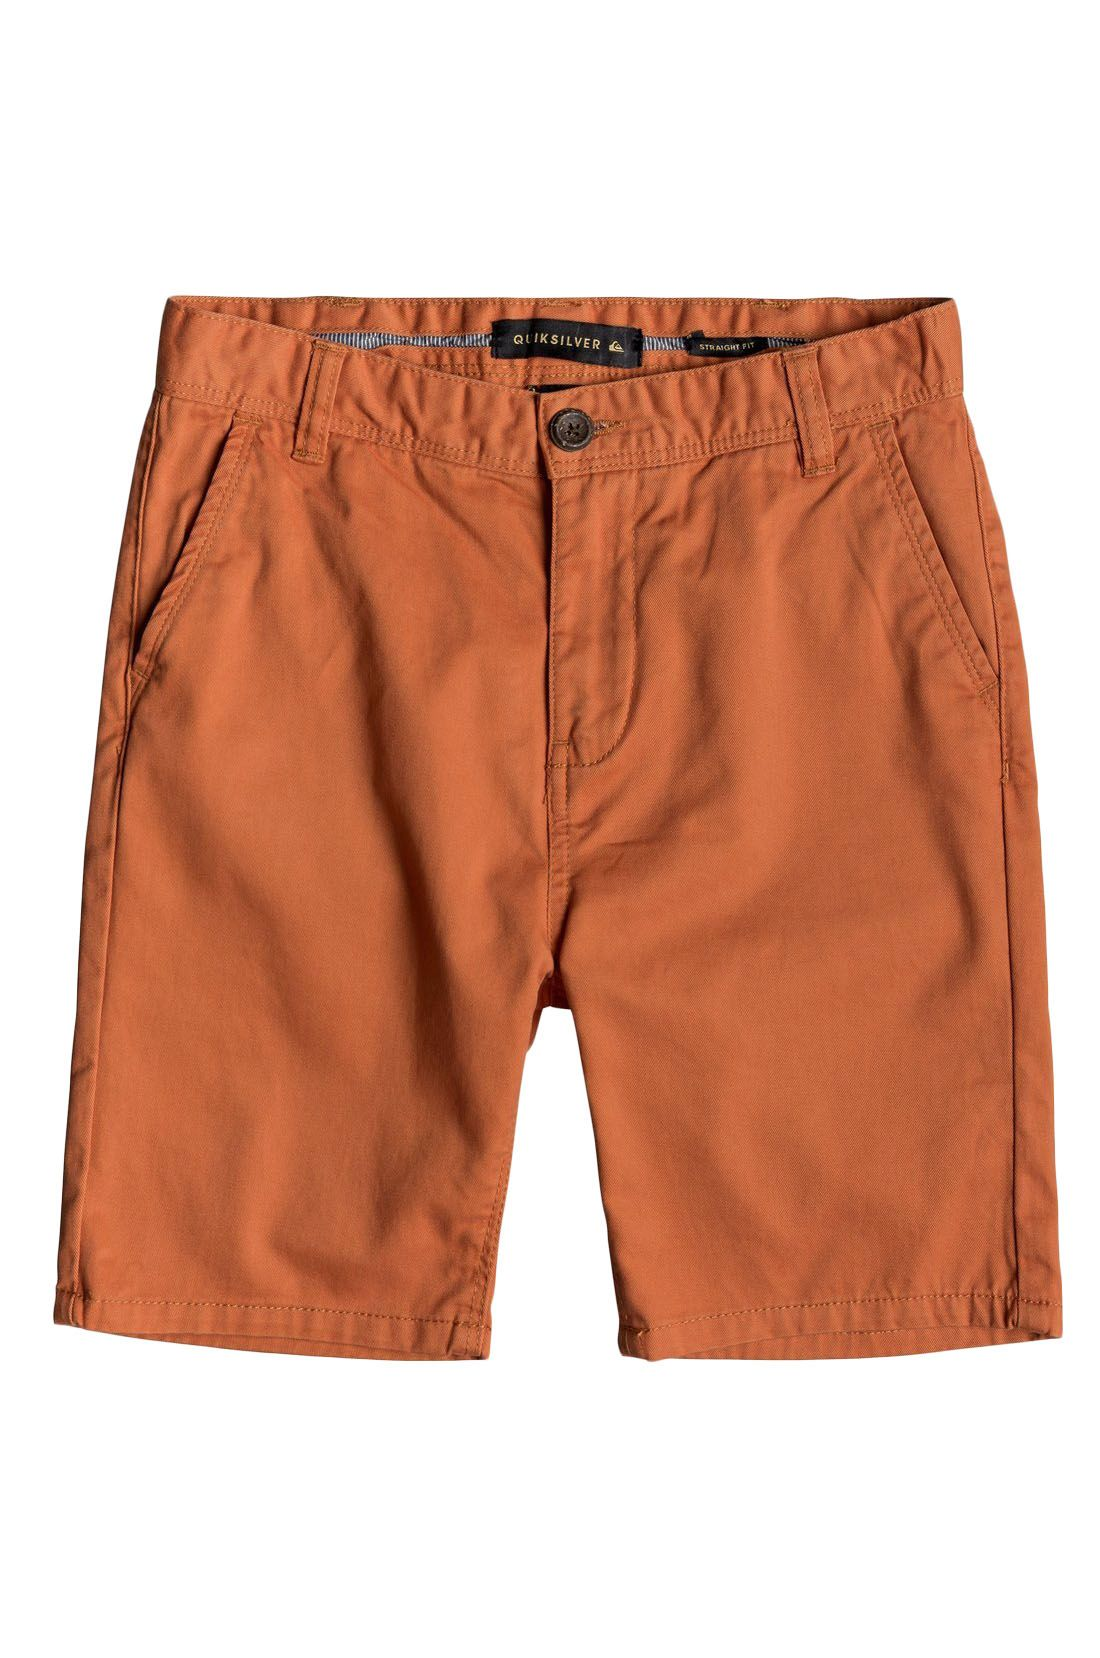 Walkshorts Quiksilver EVERYDCHSHYT B WKST Orange Rust